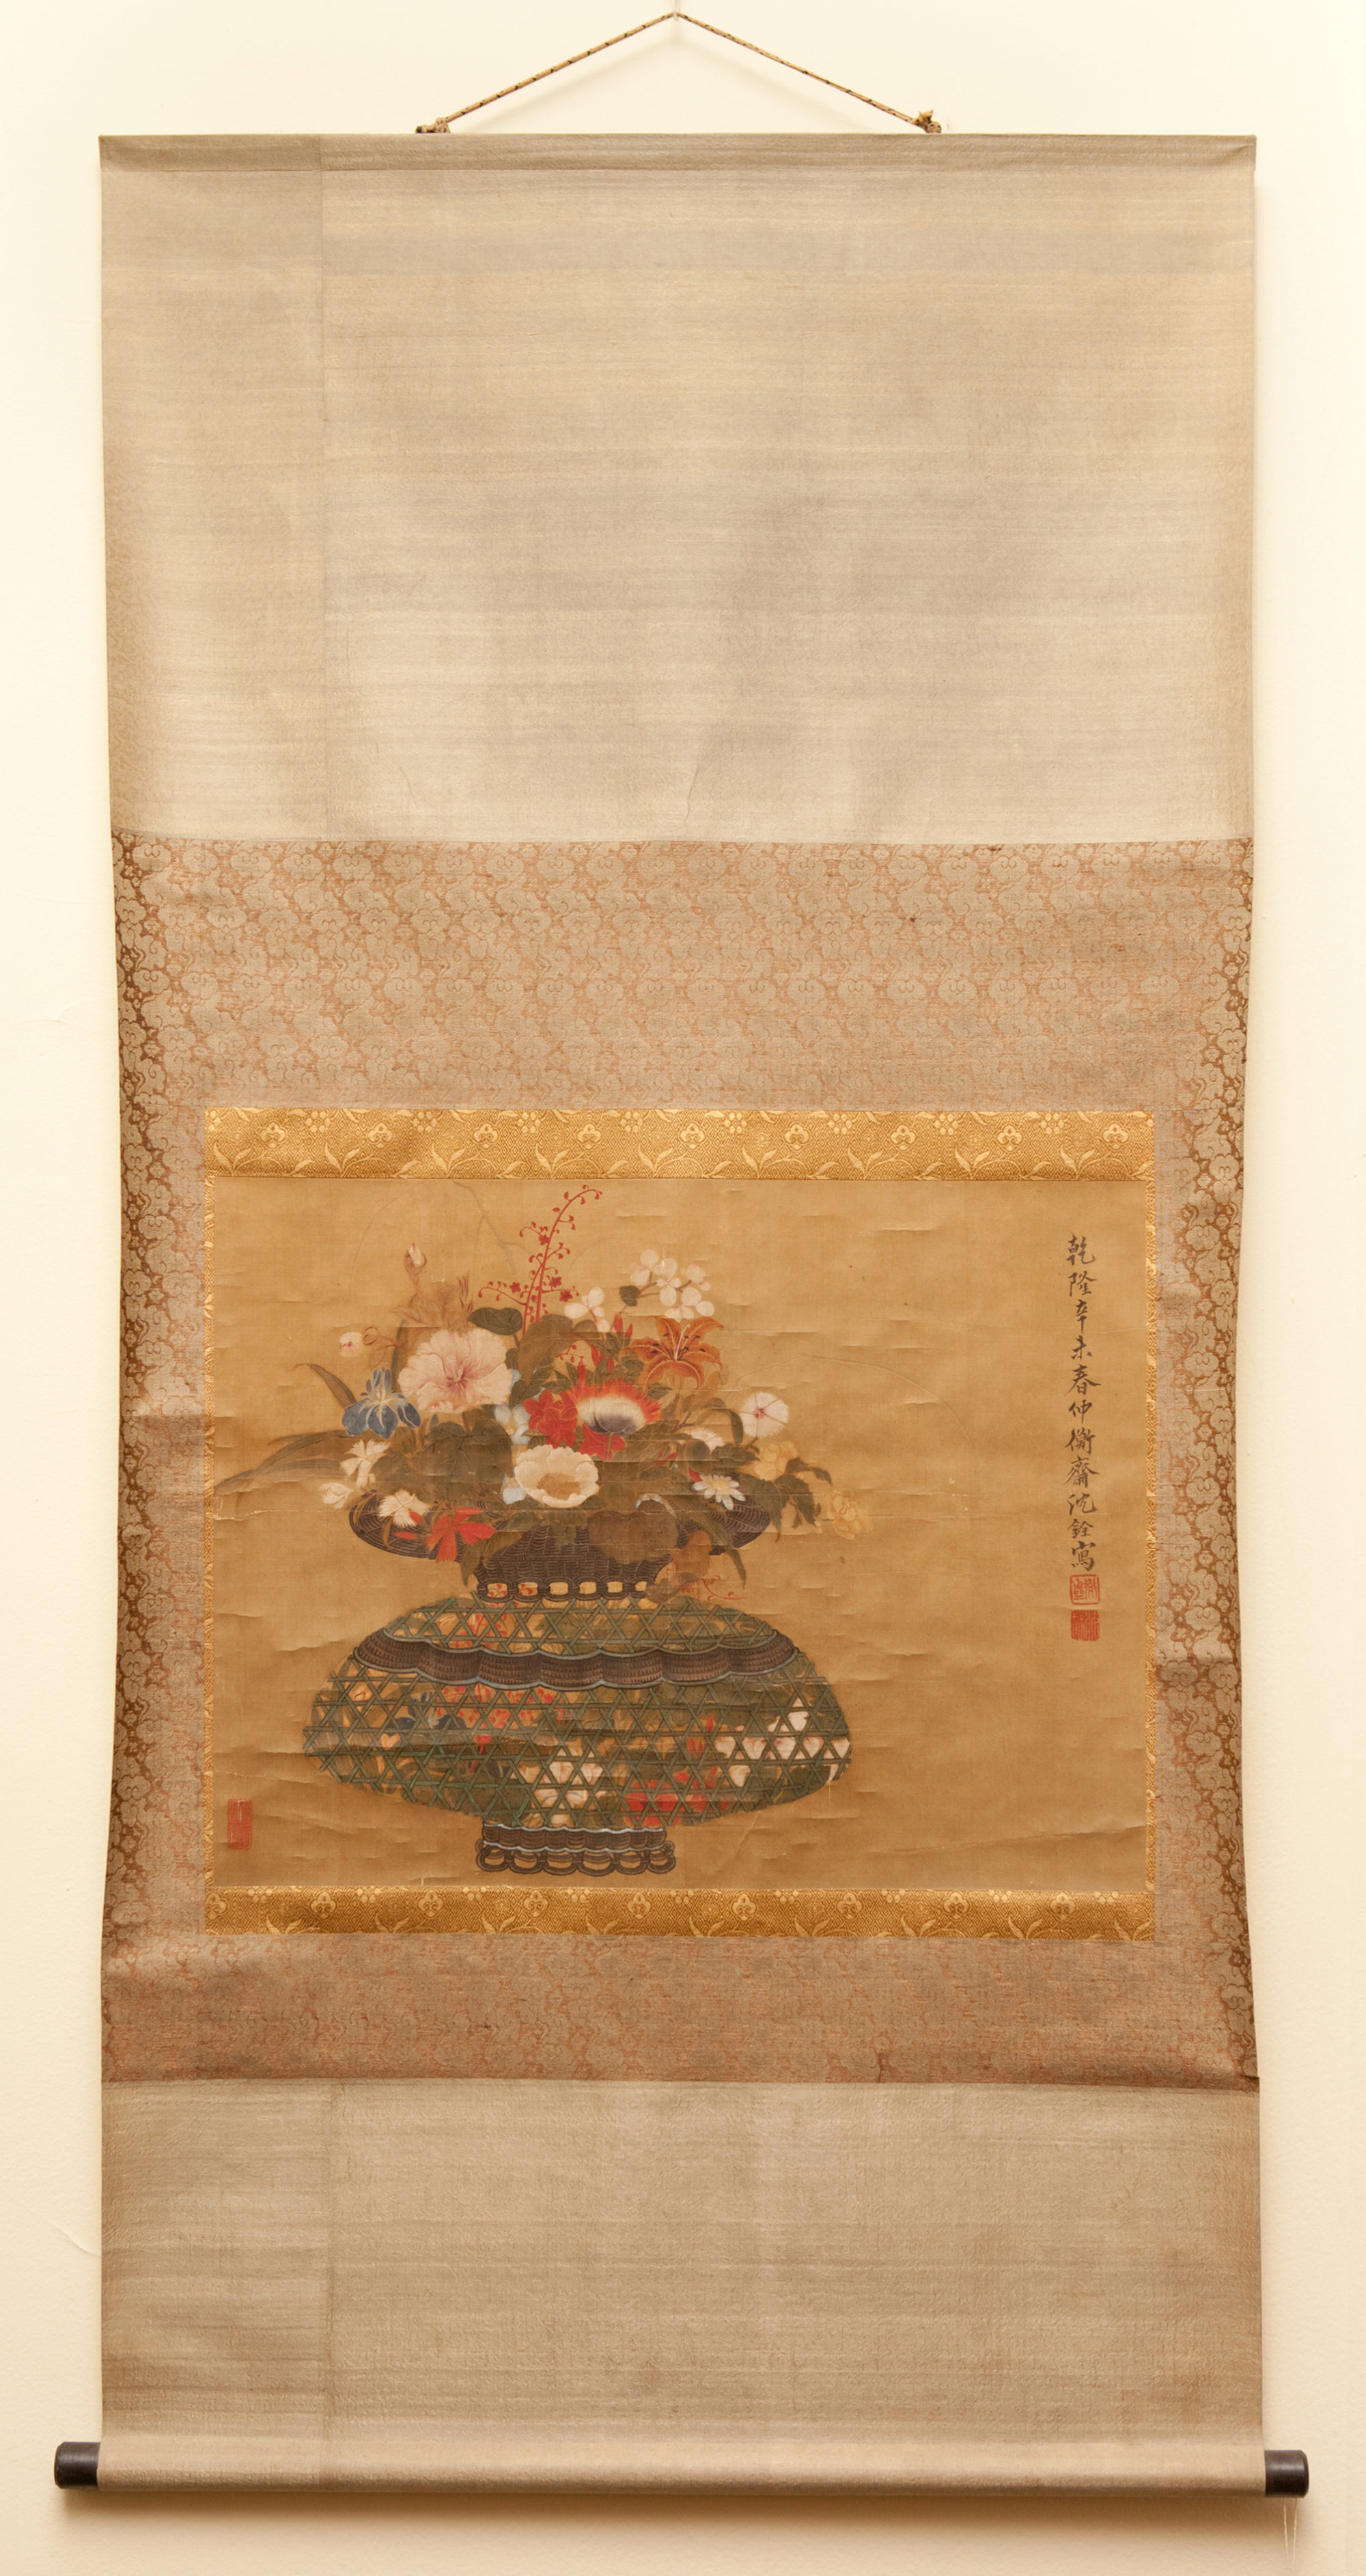 18th Century Japanese Scroll: Chinese-Style Flower Arranging Basket